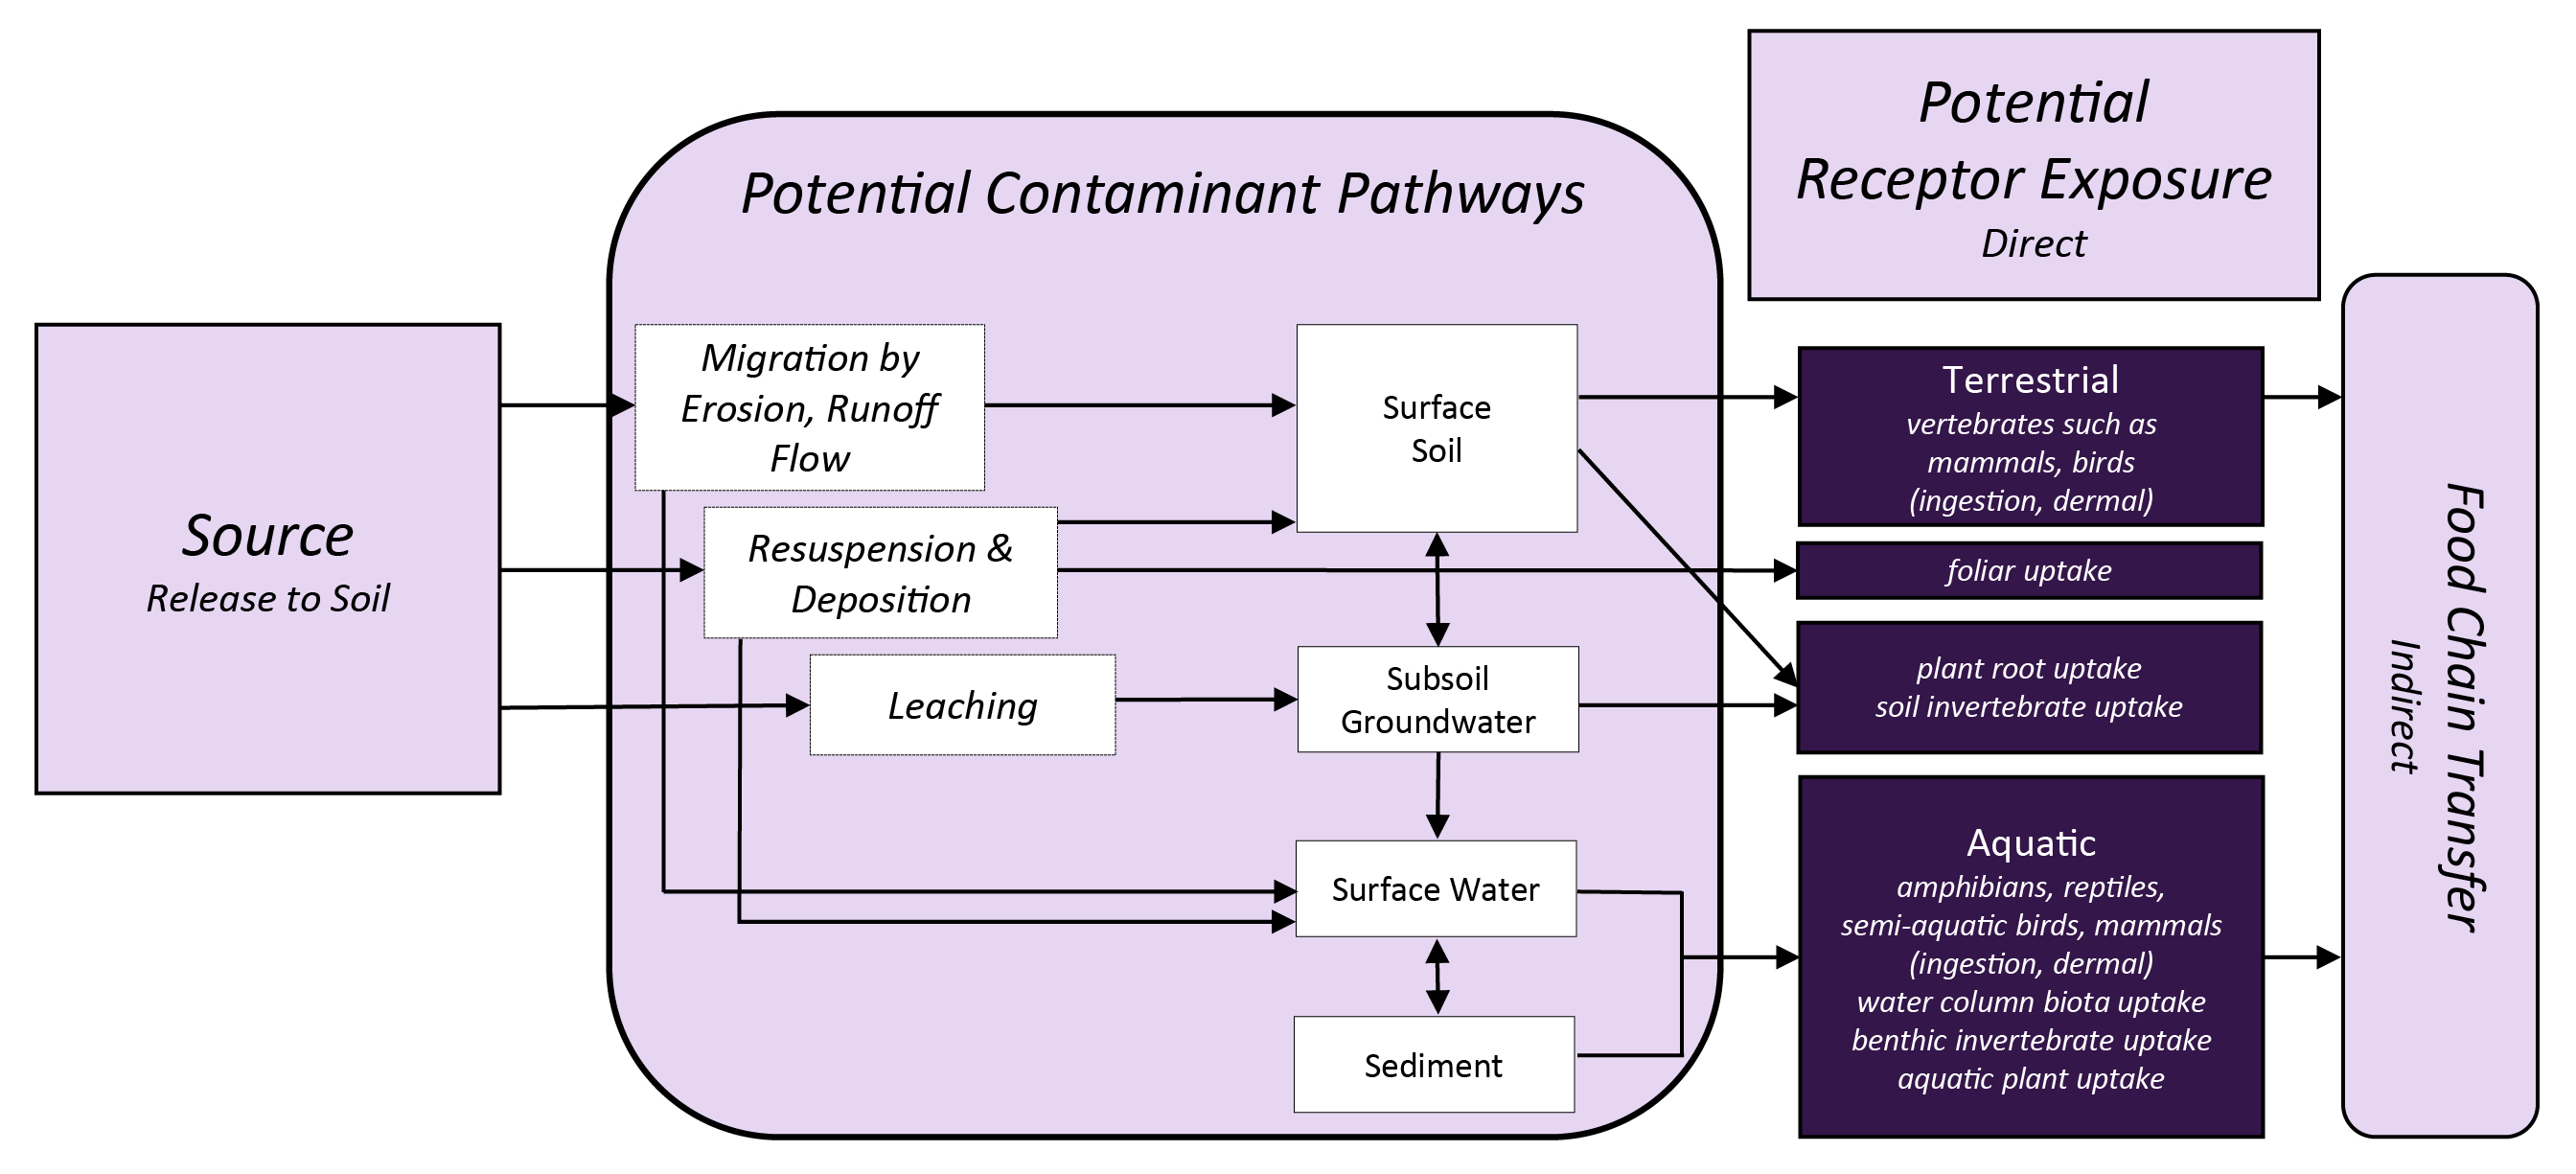 Potential exposure pathways and ecological receptors